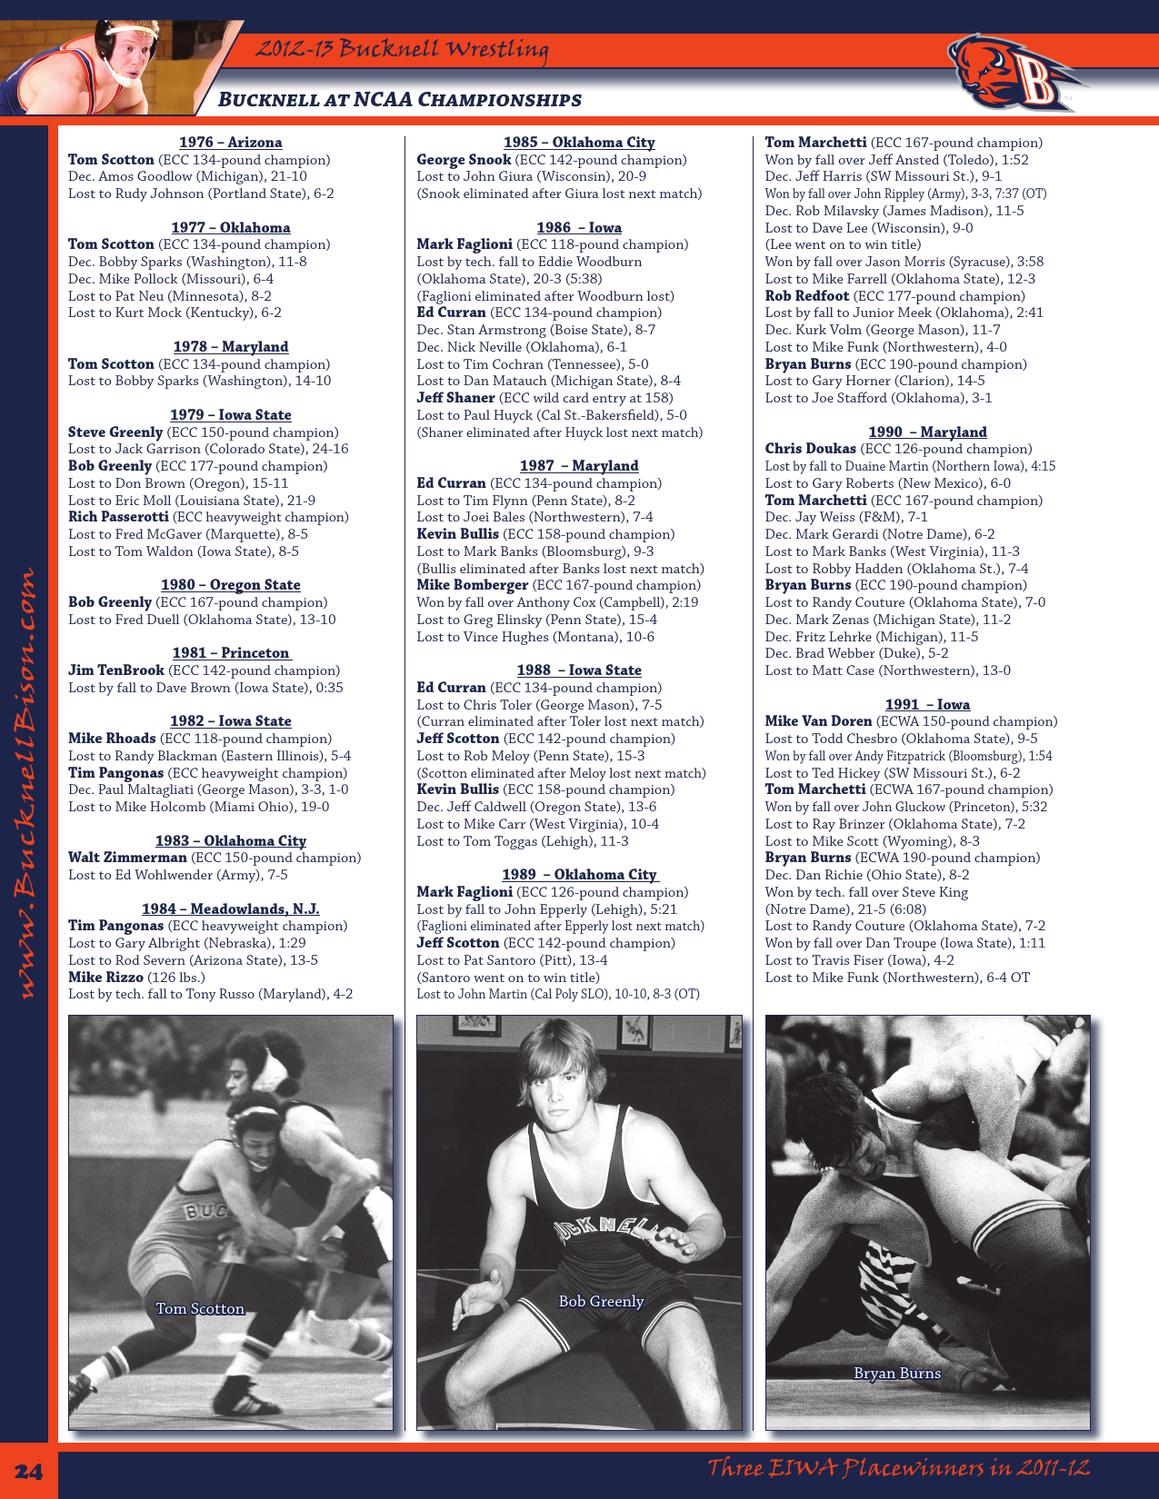 bucknell wrestling media guide by bucknell university 2012 13 bucknell wrestling media guide by bucknell university page 26 issuu